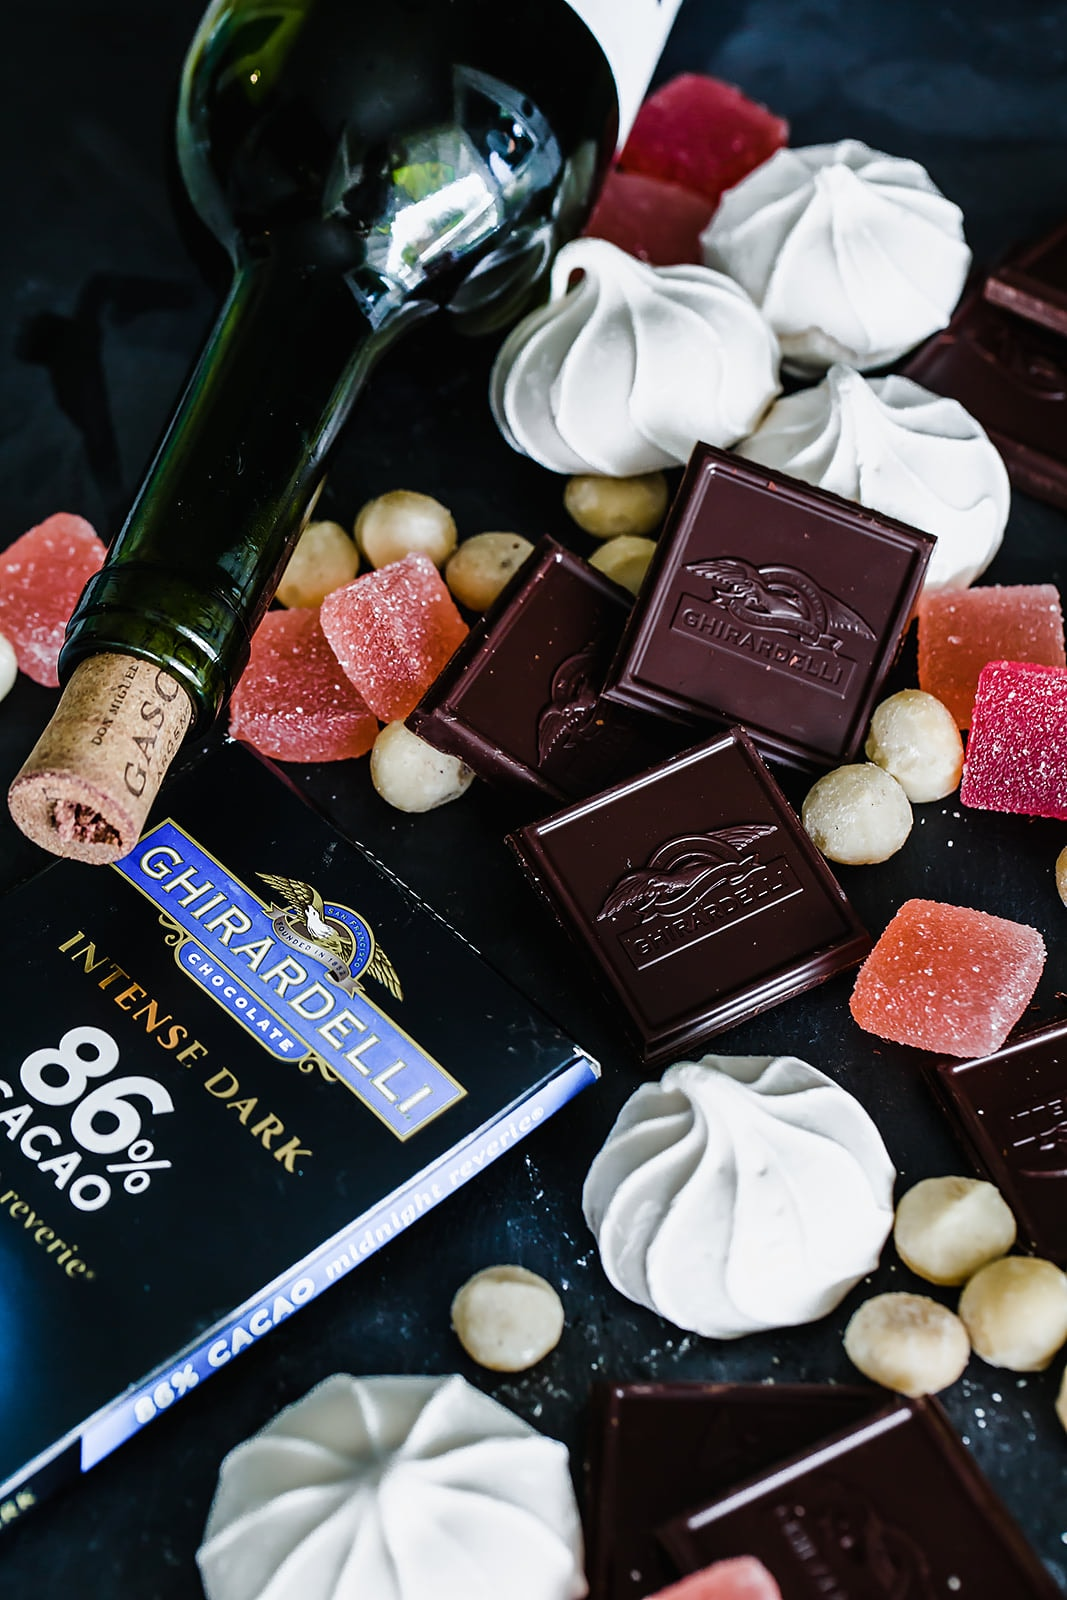 86% Cacao Midnight Reverie pairs well with sweet red wine and macadamia nuts, but also with more unexpected sweet ingredients like fruit jellies, meringue cookies, and even gourmet marshmallows!